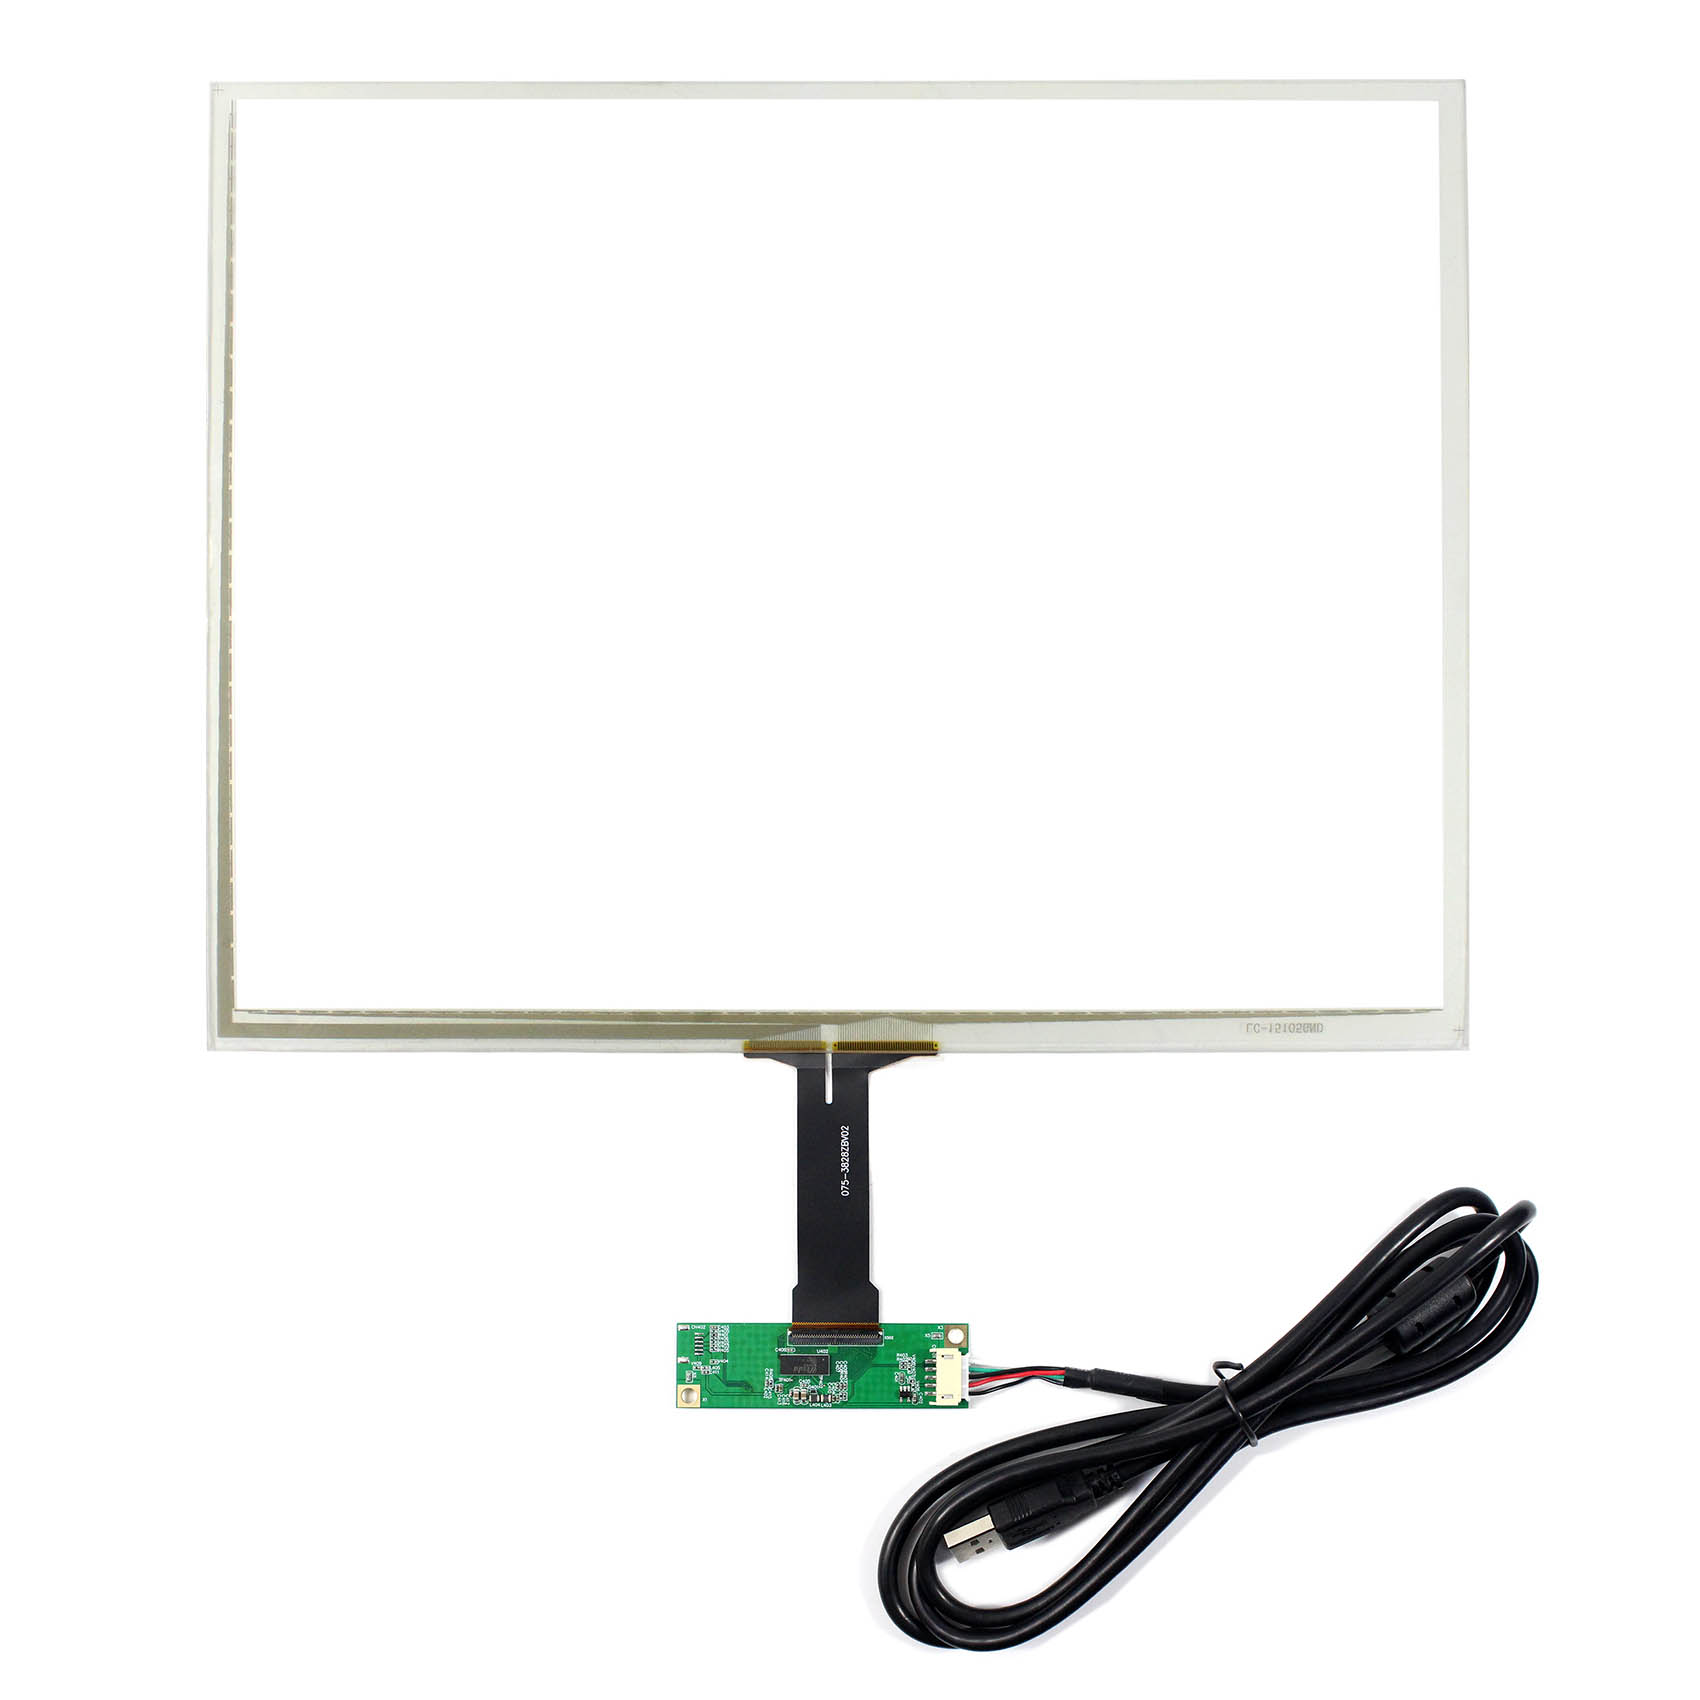 15inch  Capacitive Touch Panel Dimension Size 321mmx247mm  Compatible With 15inch 1024x768 1400x1050 4:3 LCD Screen 15inch  Capacitive Touch Panel Dimension Size 321mmx247mm  Compatible With 15inch 1024x768 1400x1050 4:3 LCD Screen